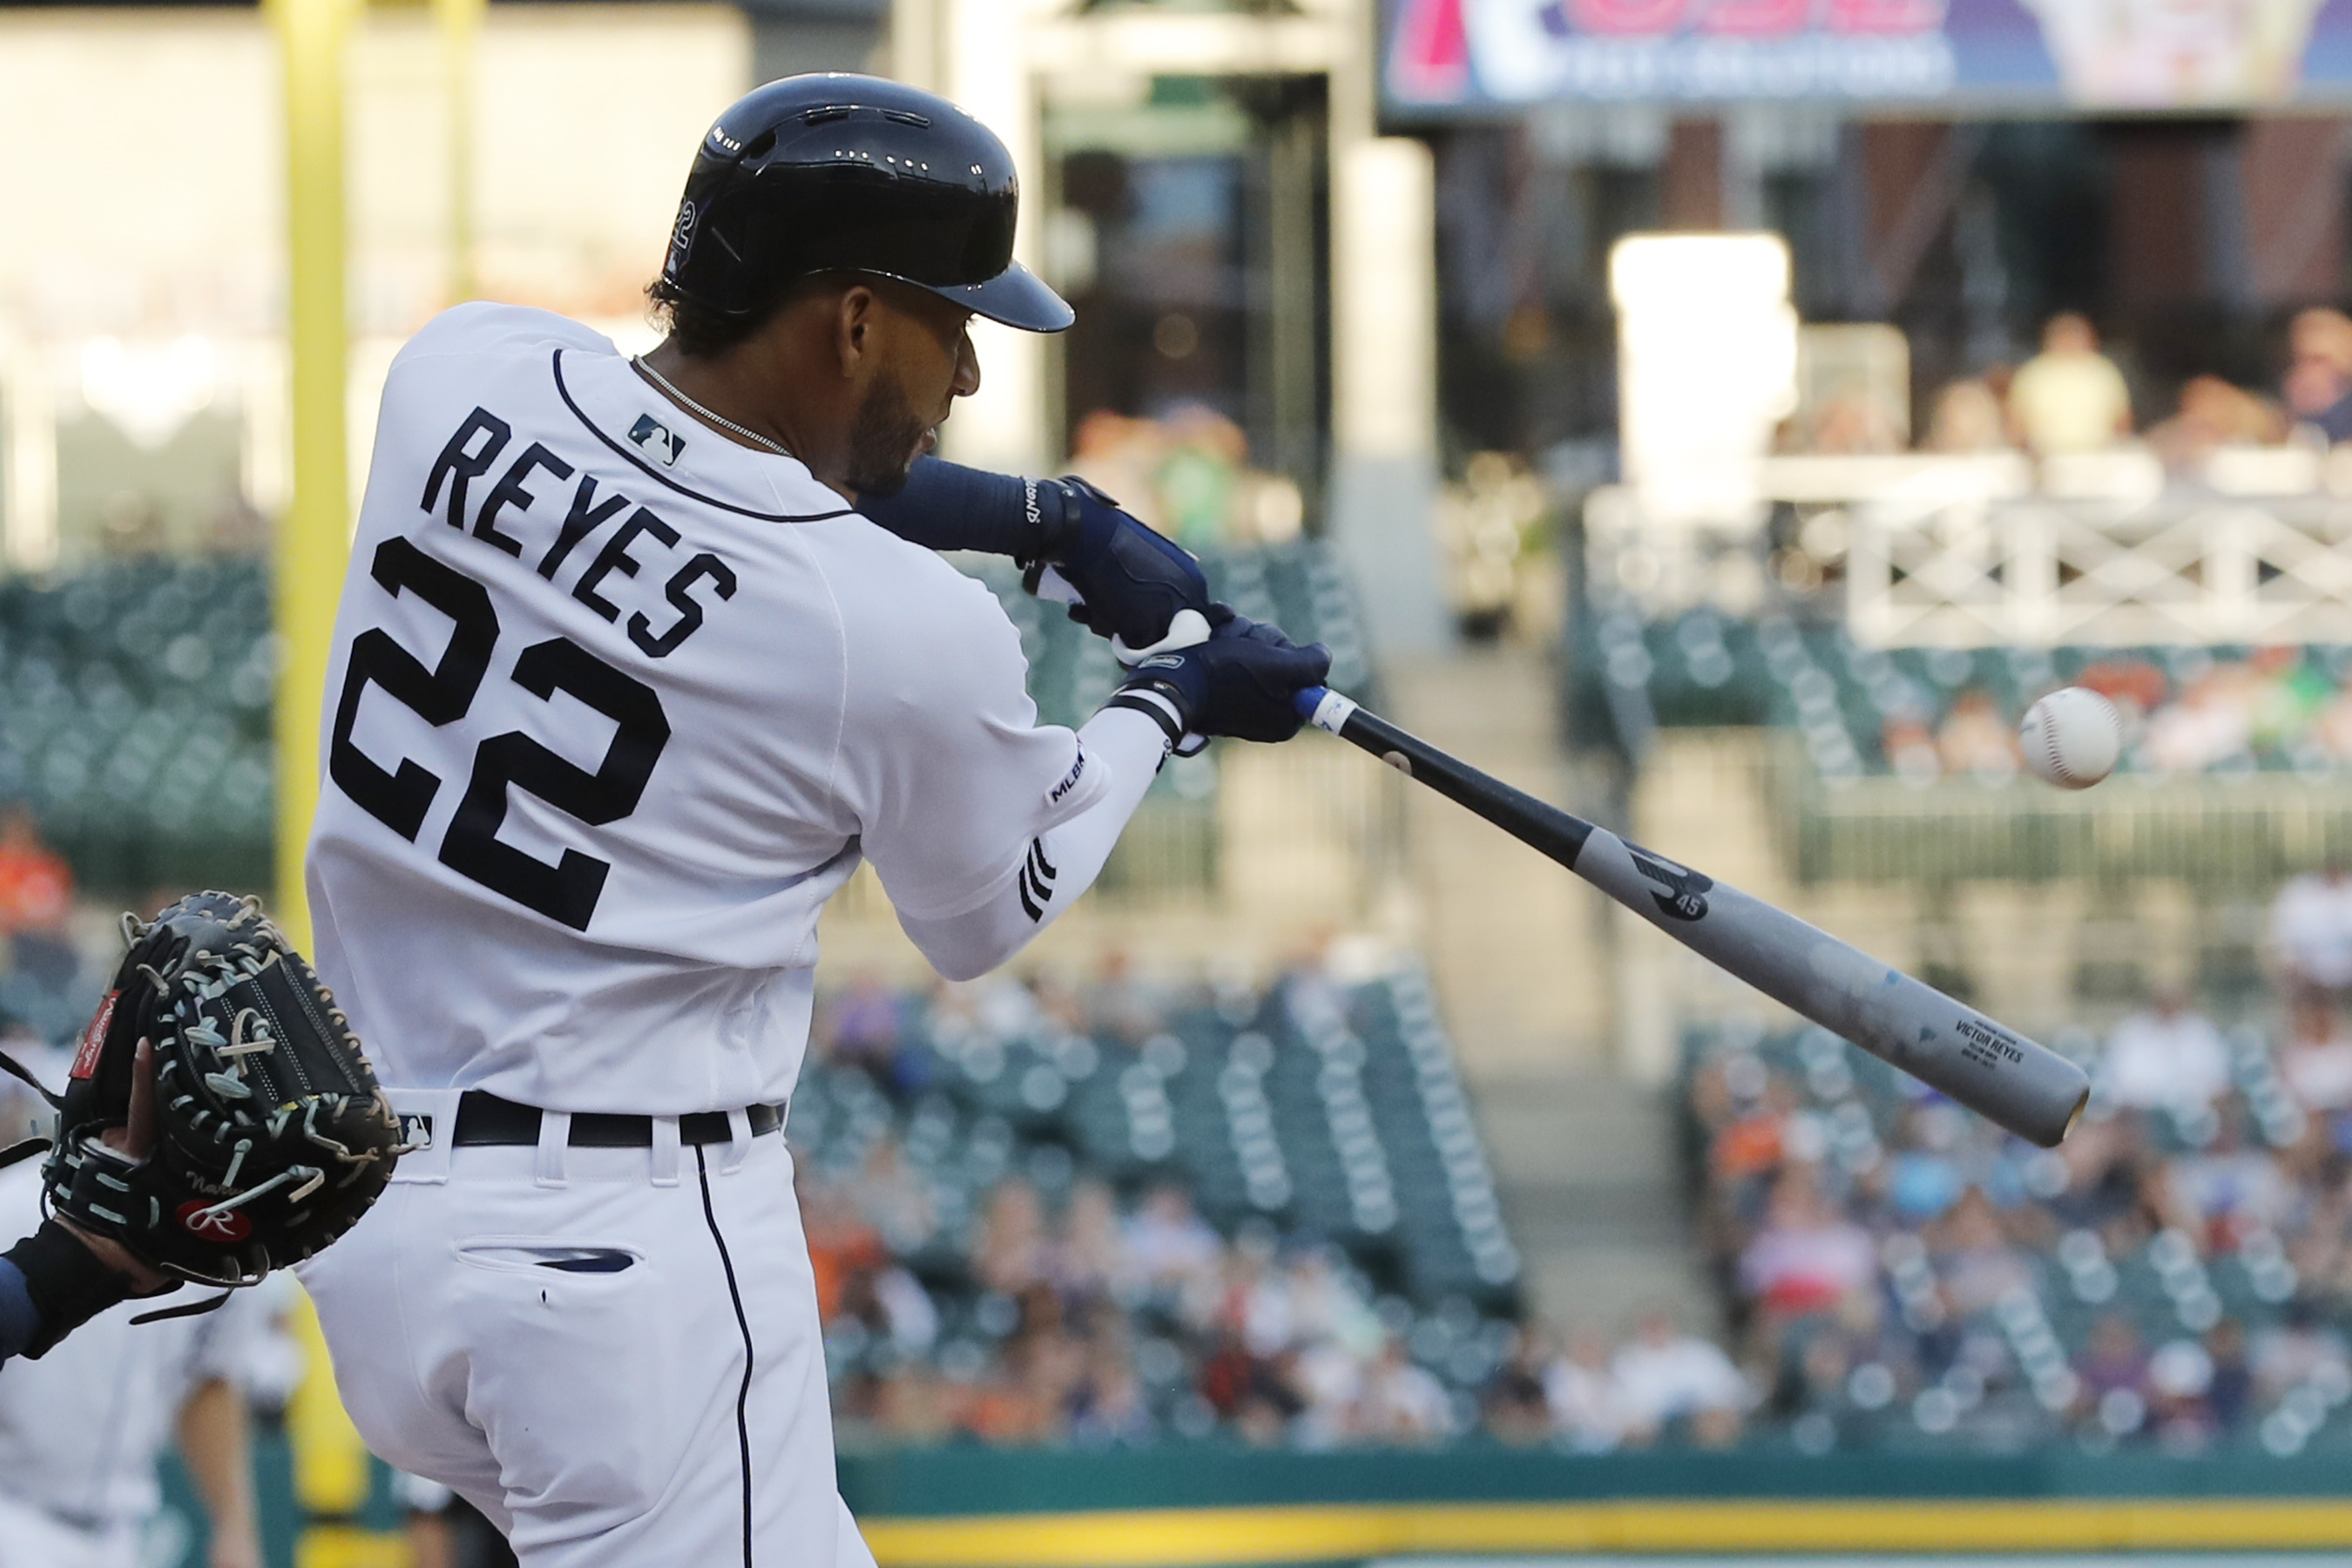 Rogers' arm and Reyes' bat help Tigers beat Mariners 3-2